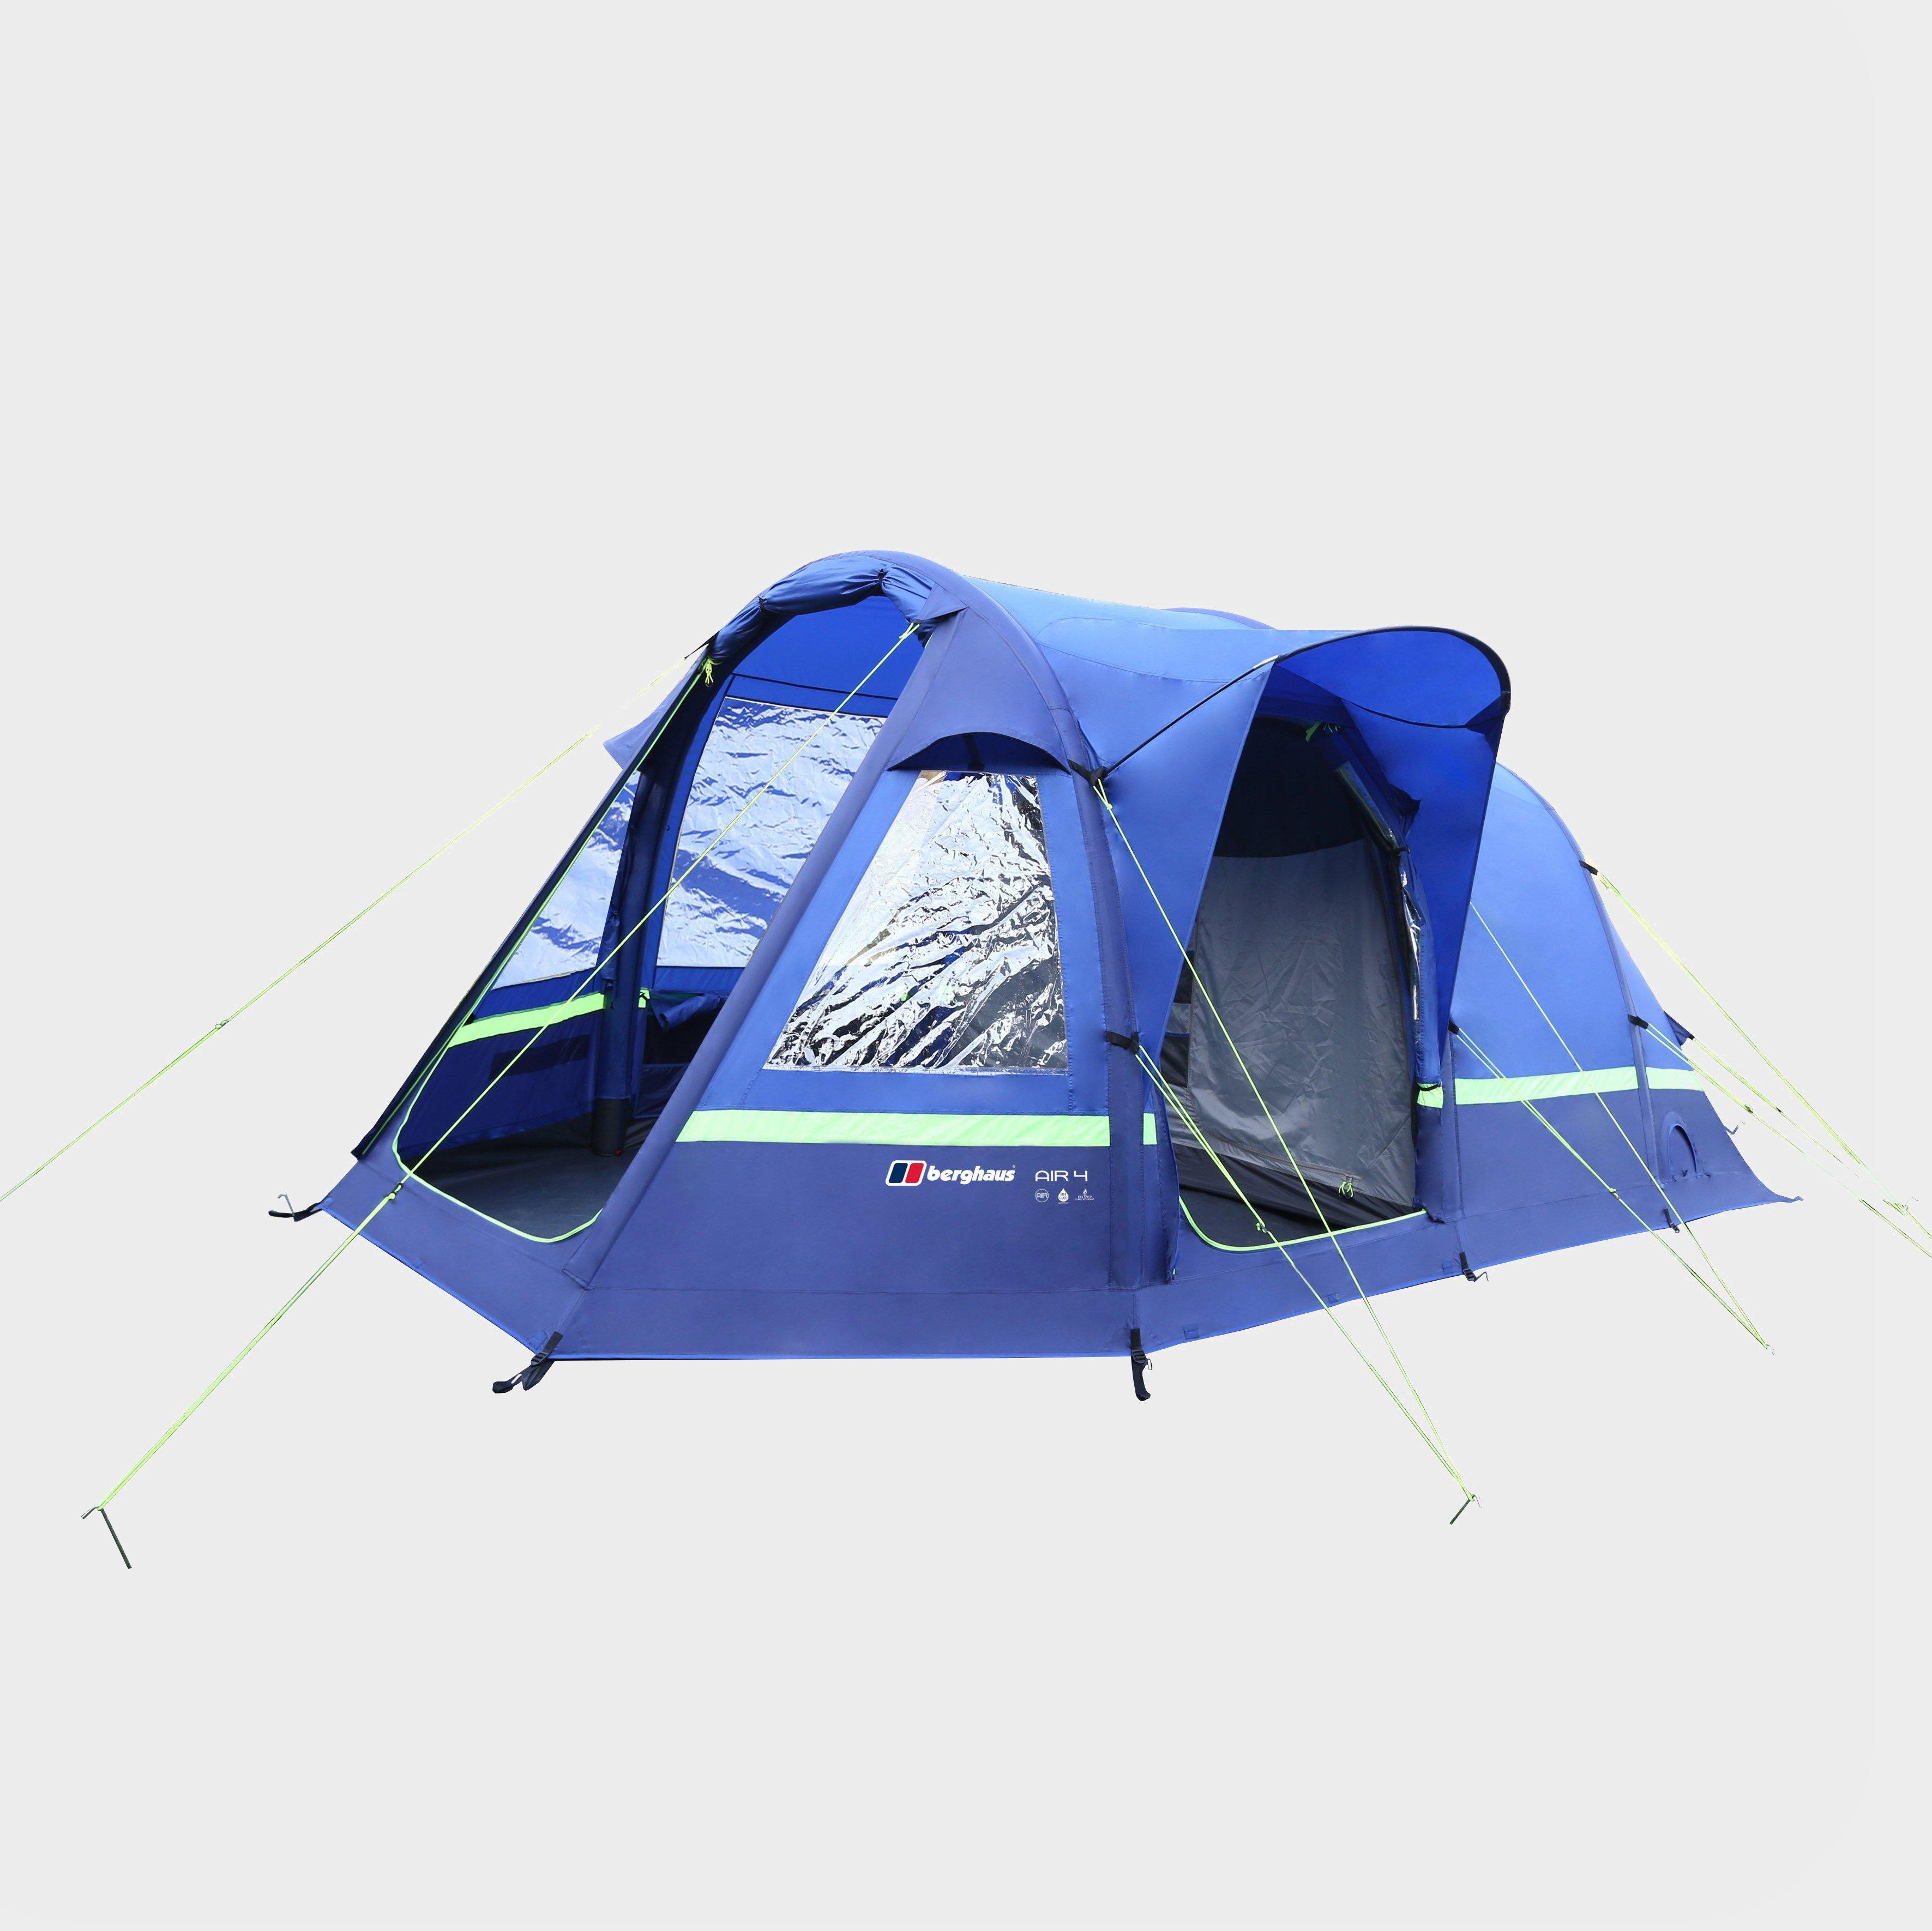 BERGHAUS Air 4 Man Family Tent